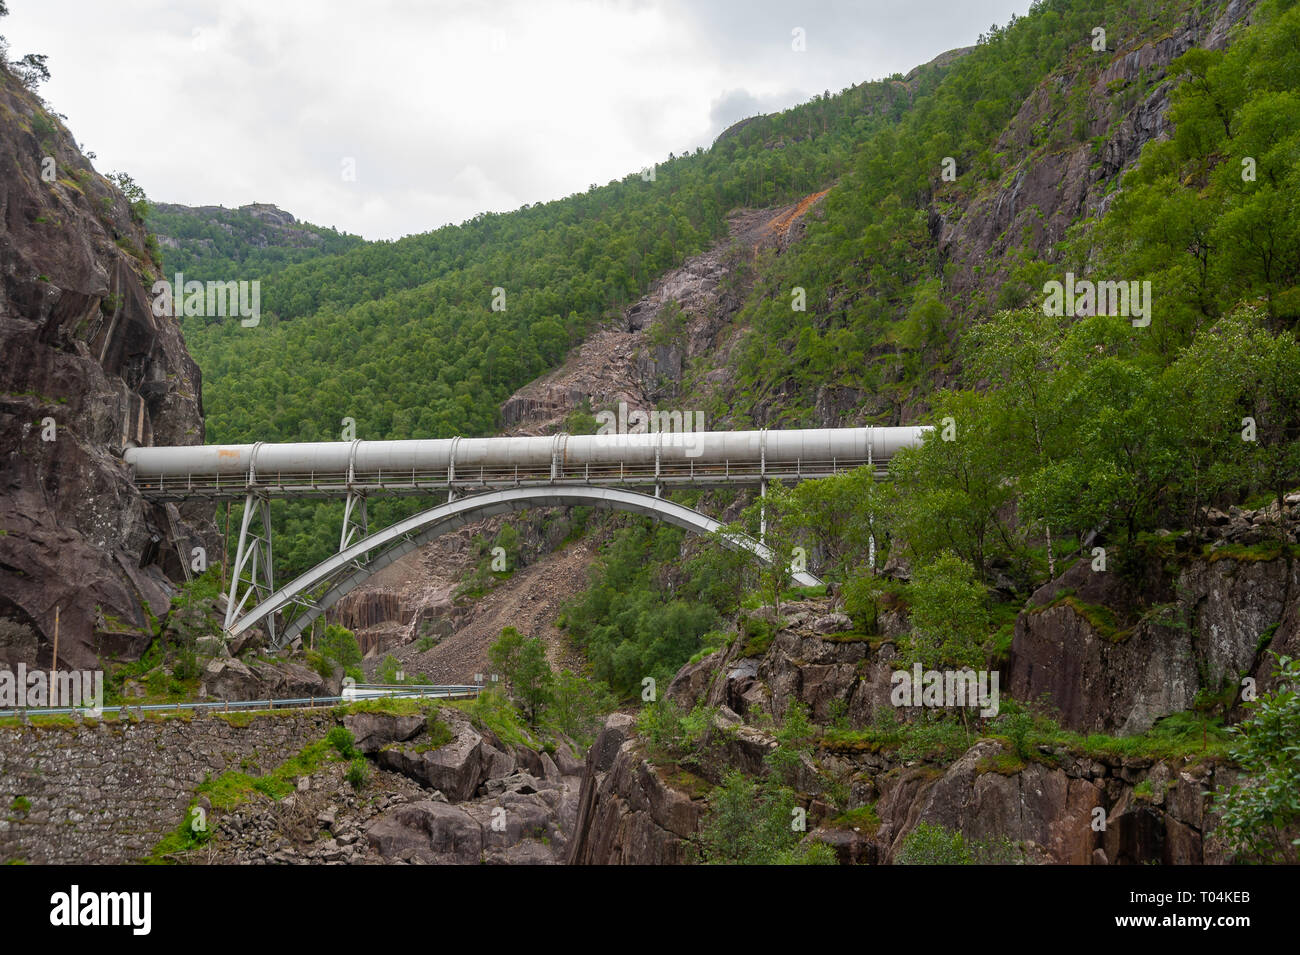 Open road in a mountain valley with a pipeline across. Empty road with no traffic in countryside. Rural landscape. Ryfylke scenic route. Norway. - Stock Image